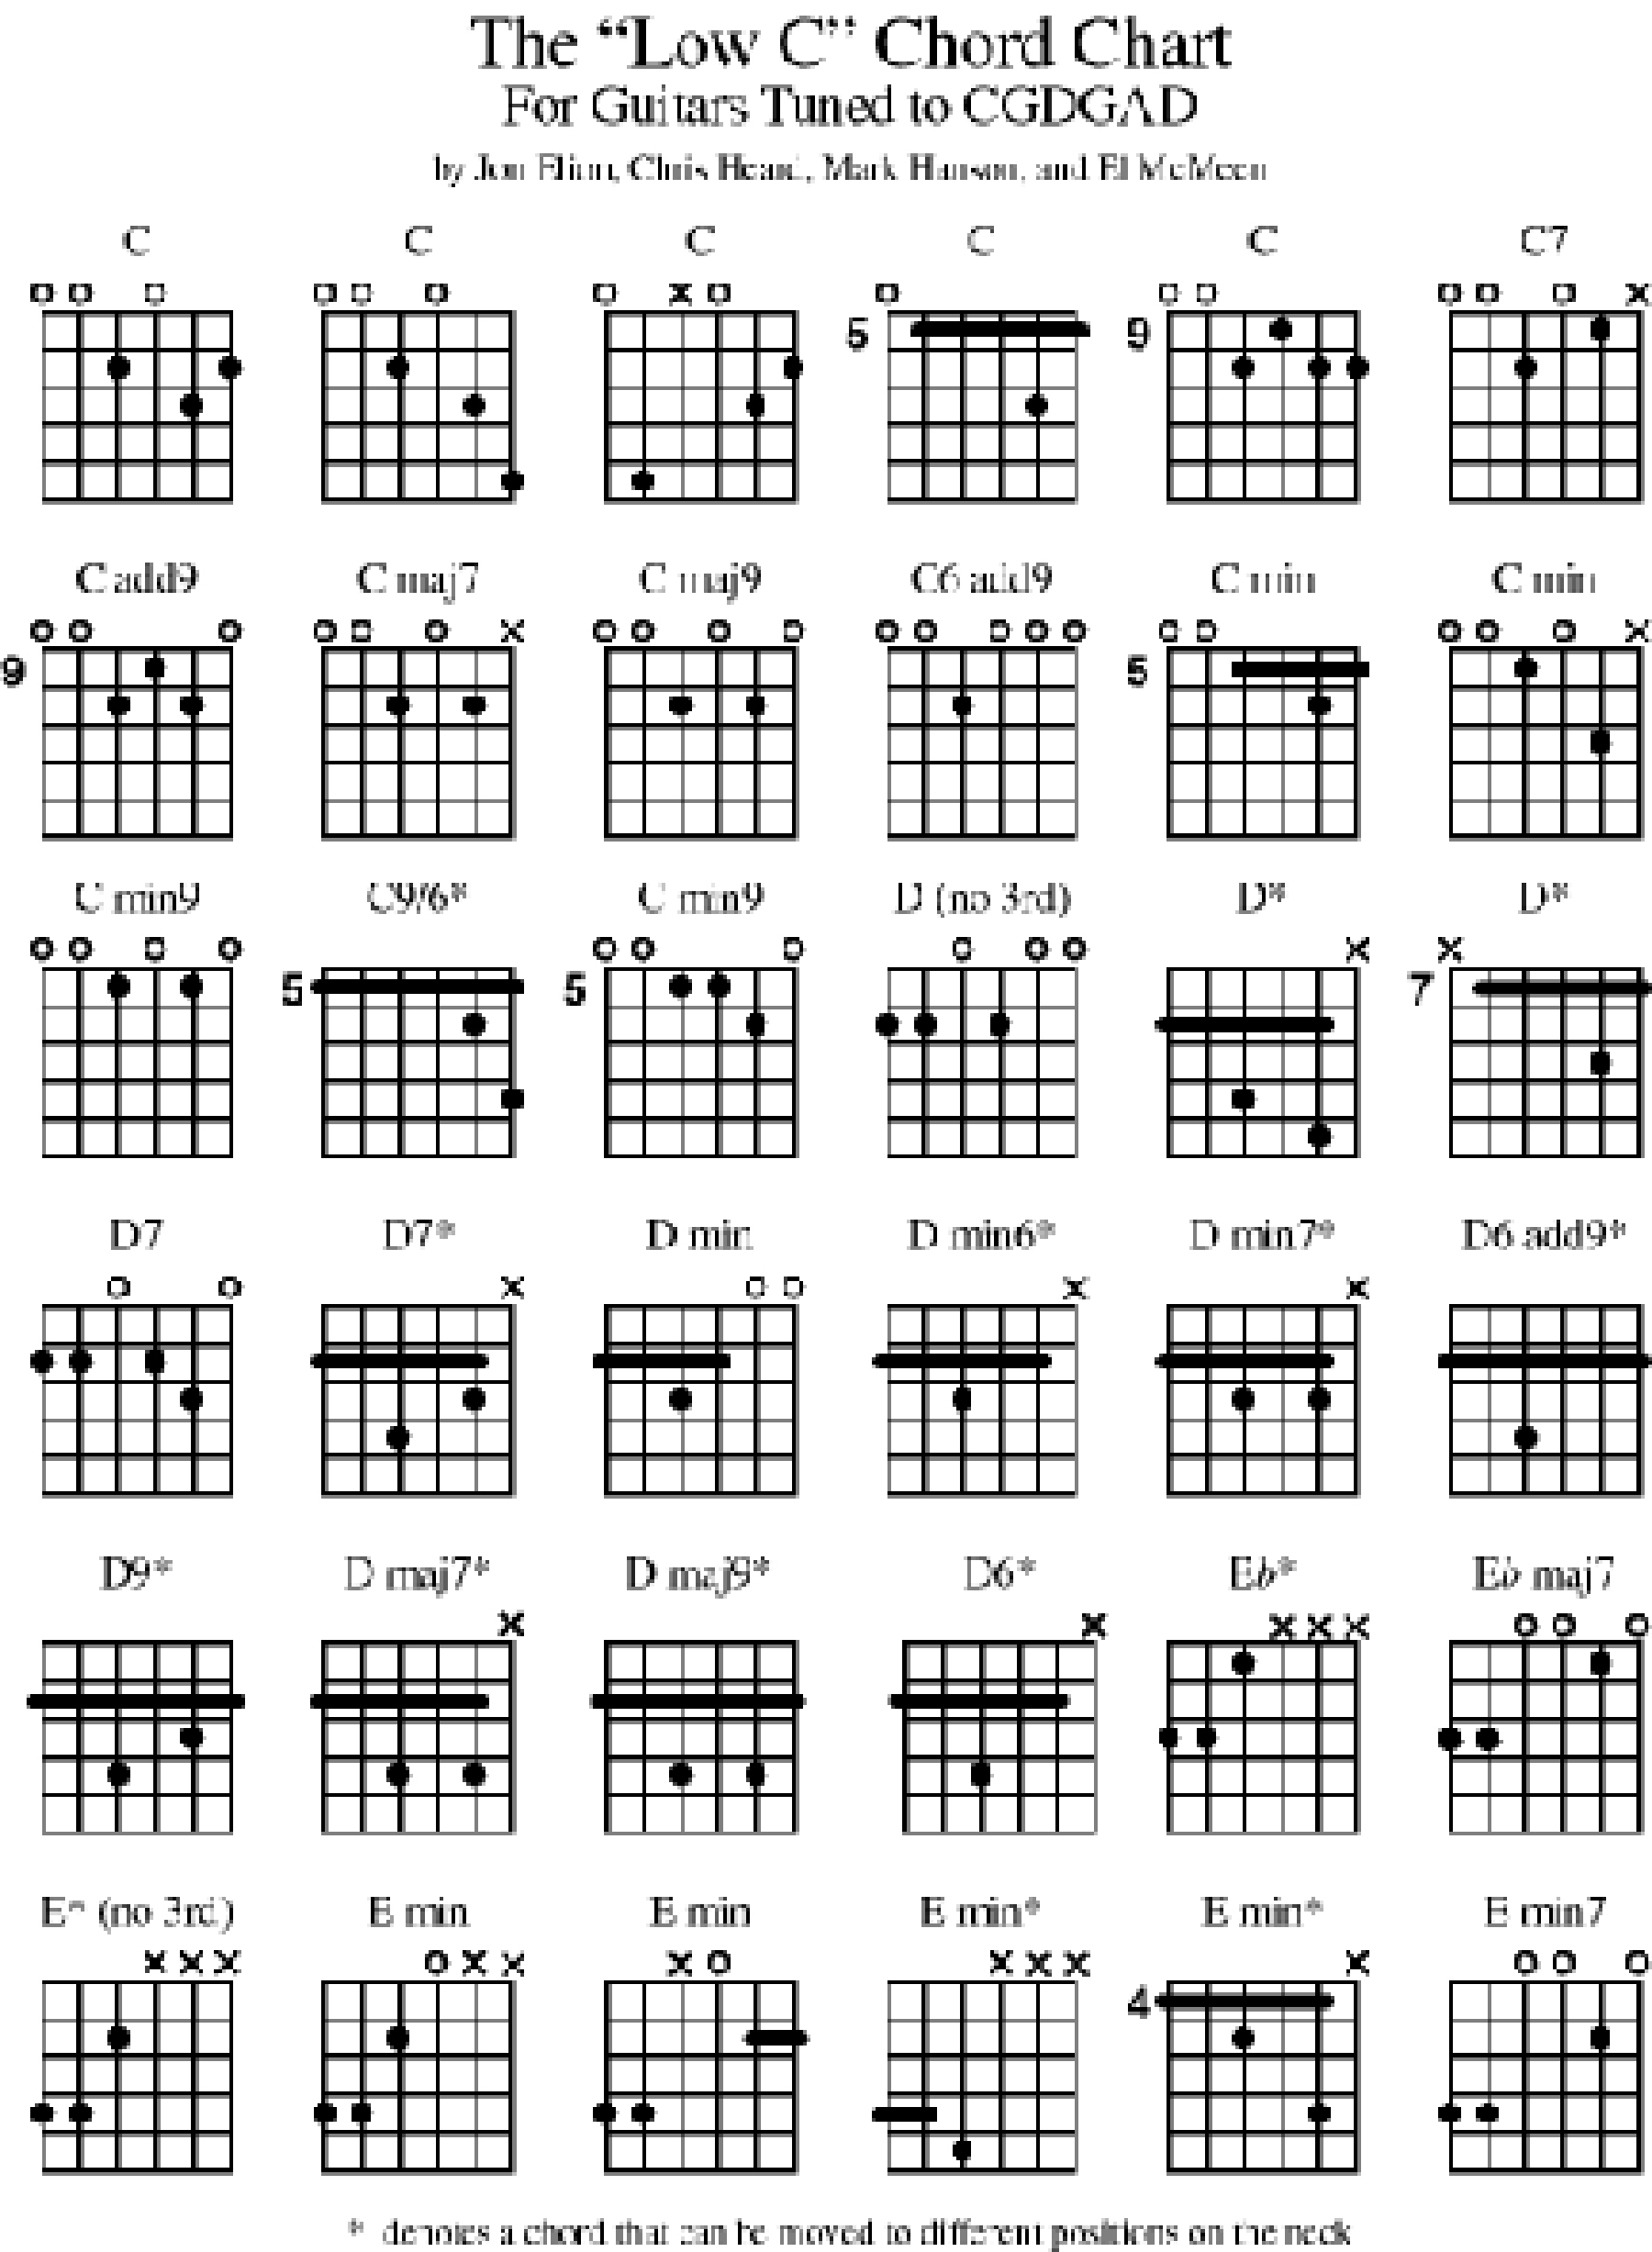 Bass Guitar Chord Chart 2015confession